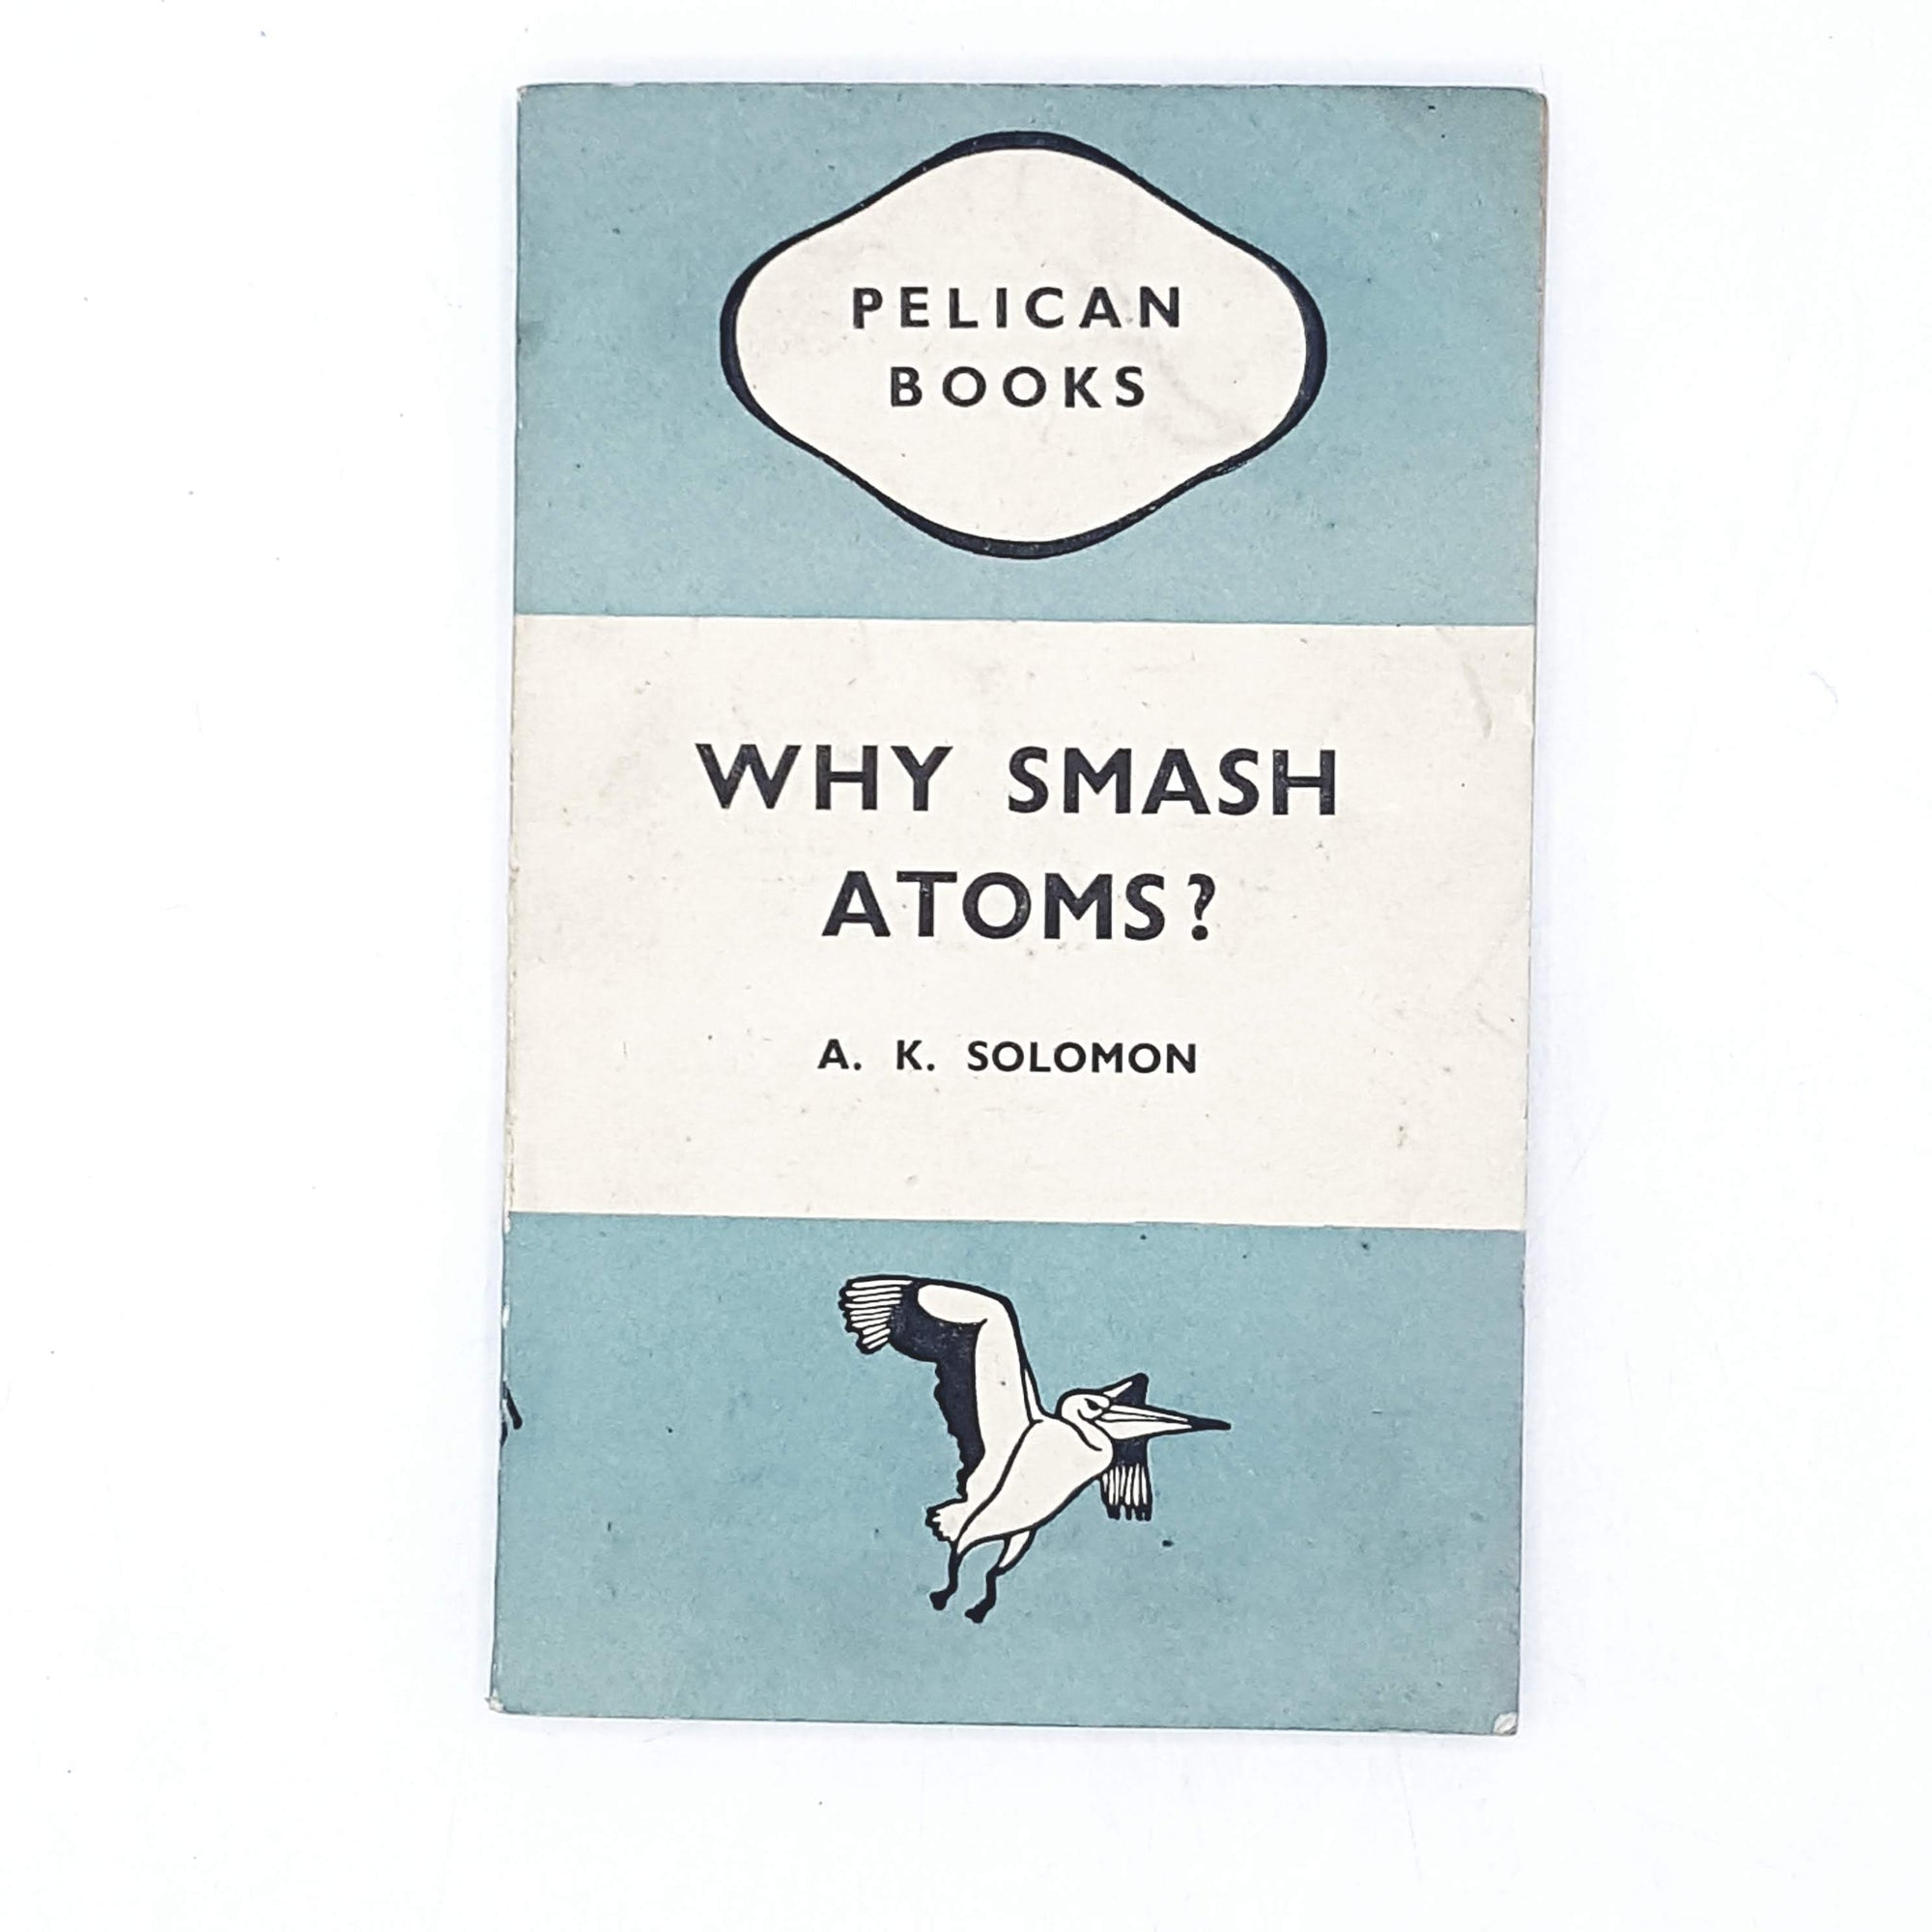 Why Smash Atoms? by A. K. Solomon 1945